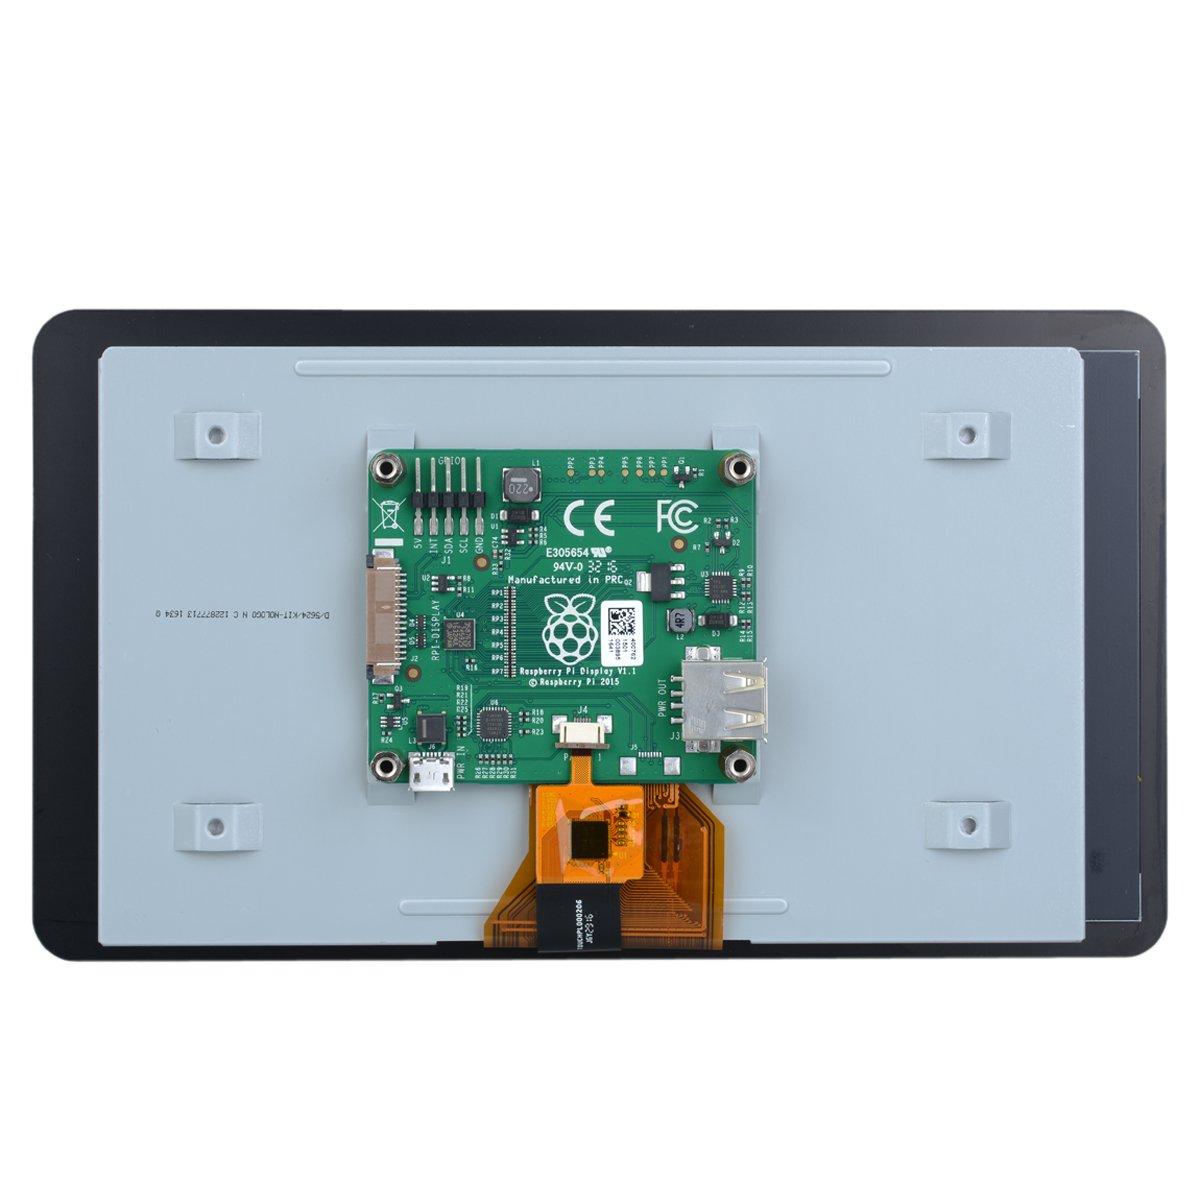 7'' 800 x 480 Touch Screen Display for Raspberry Pi 2B / B+/ A+ by OLSUS (Image #2)